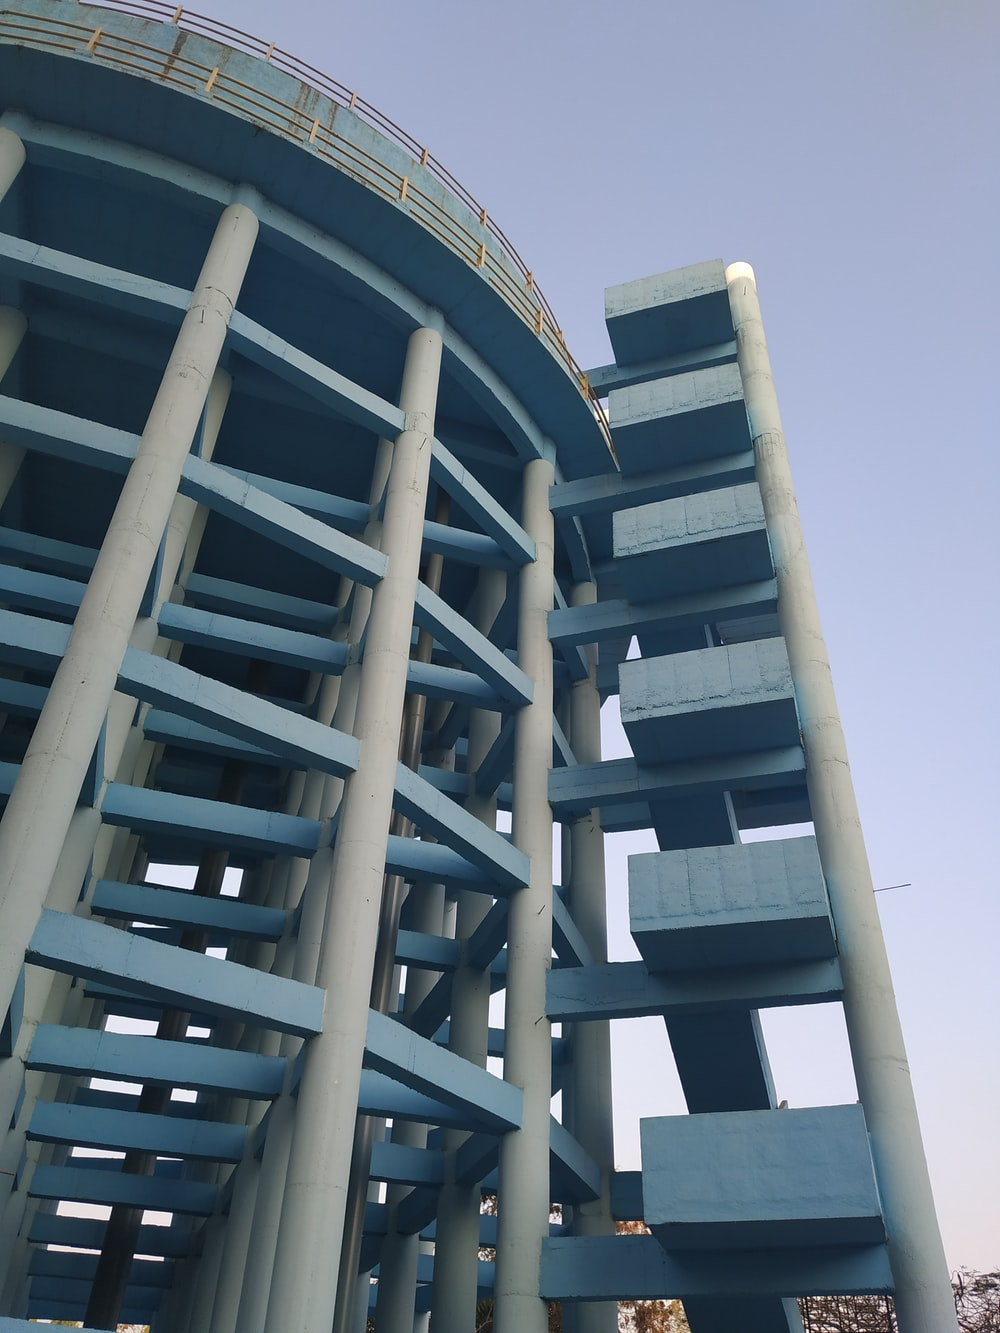 blue and white building during daytime